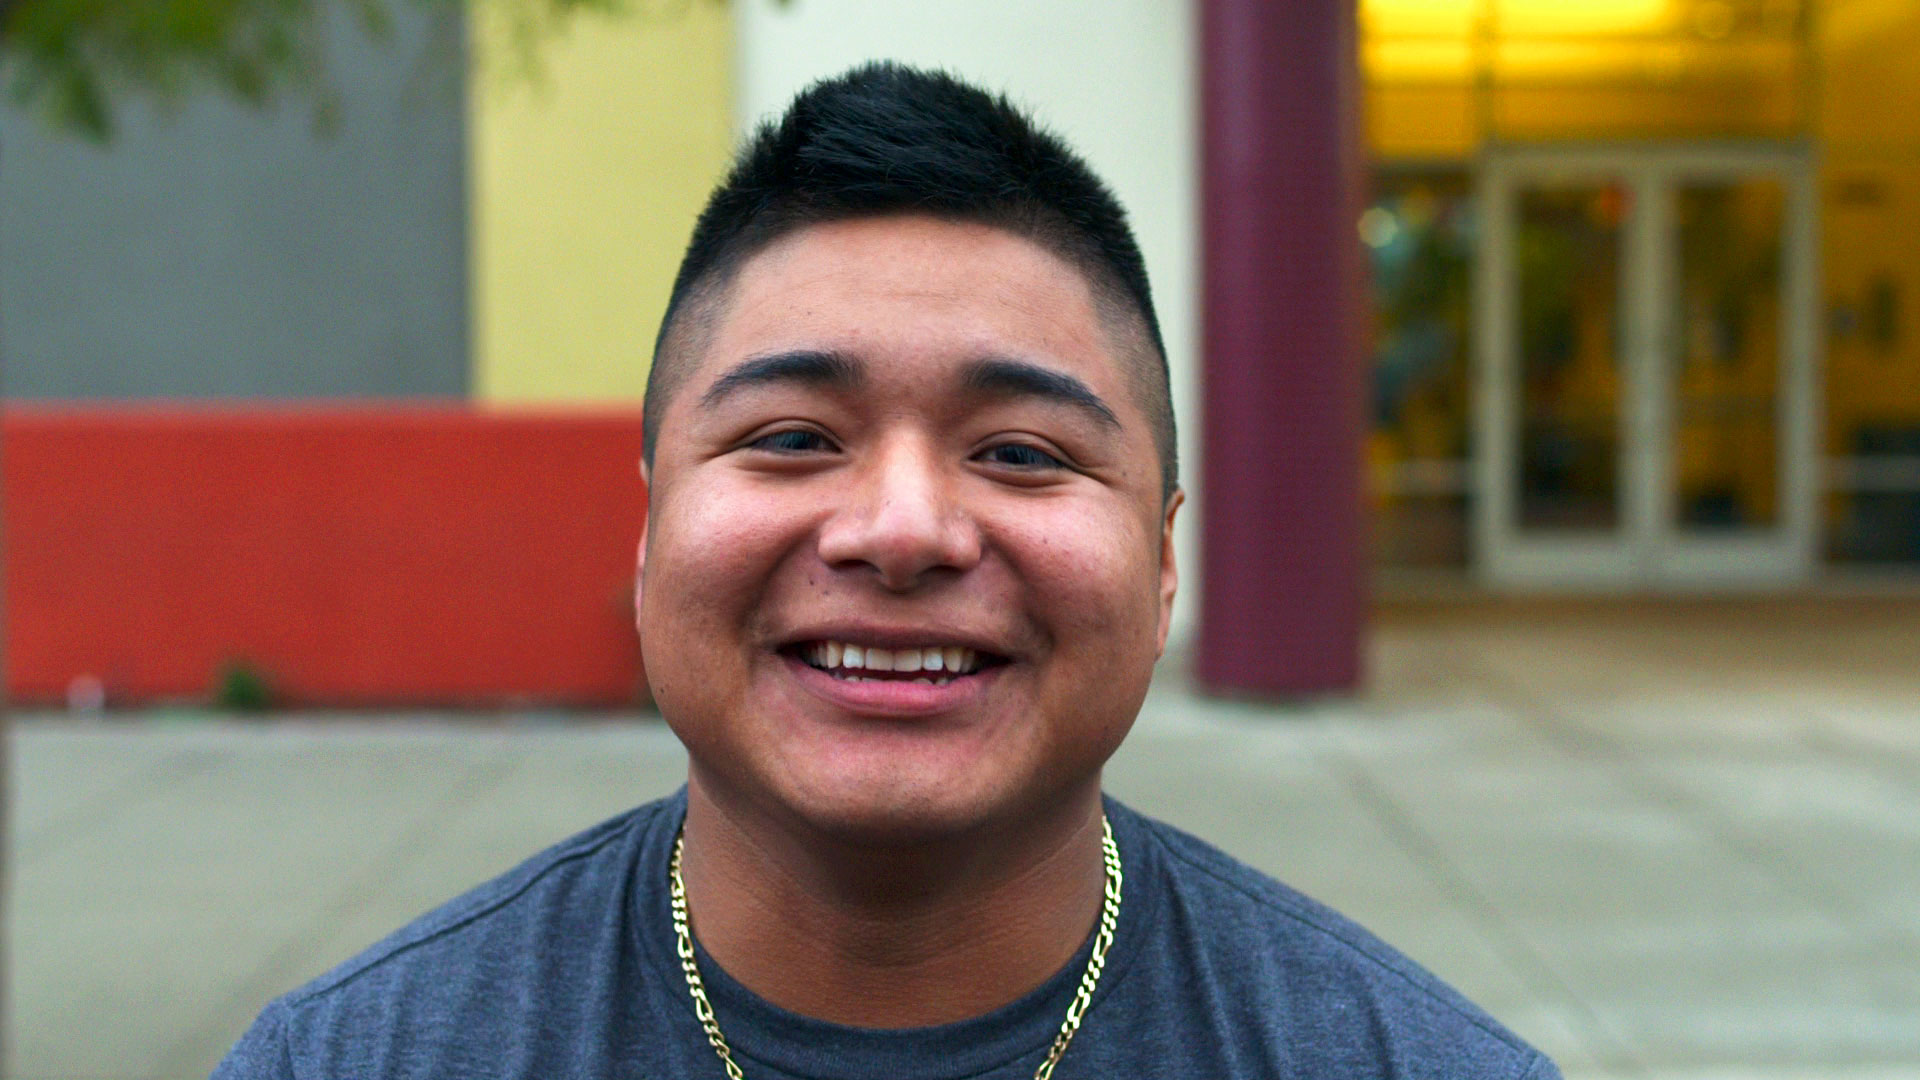 Young Latino man smiles for the camera.